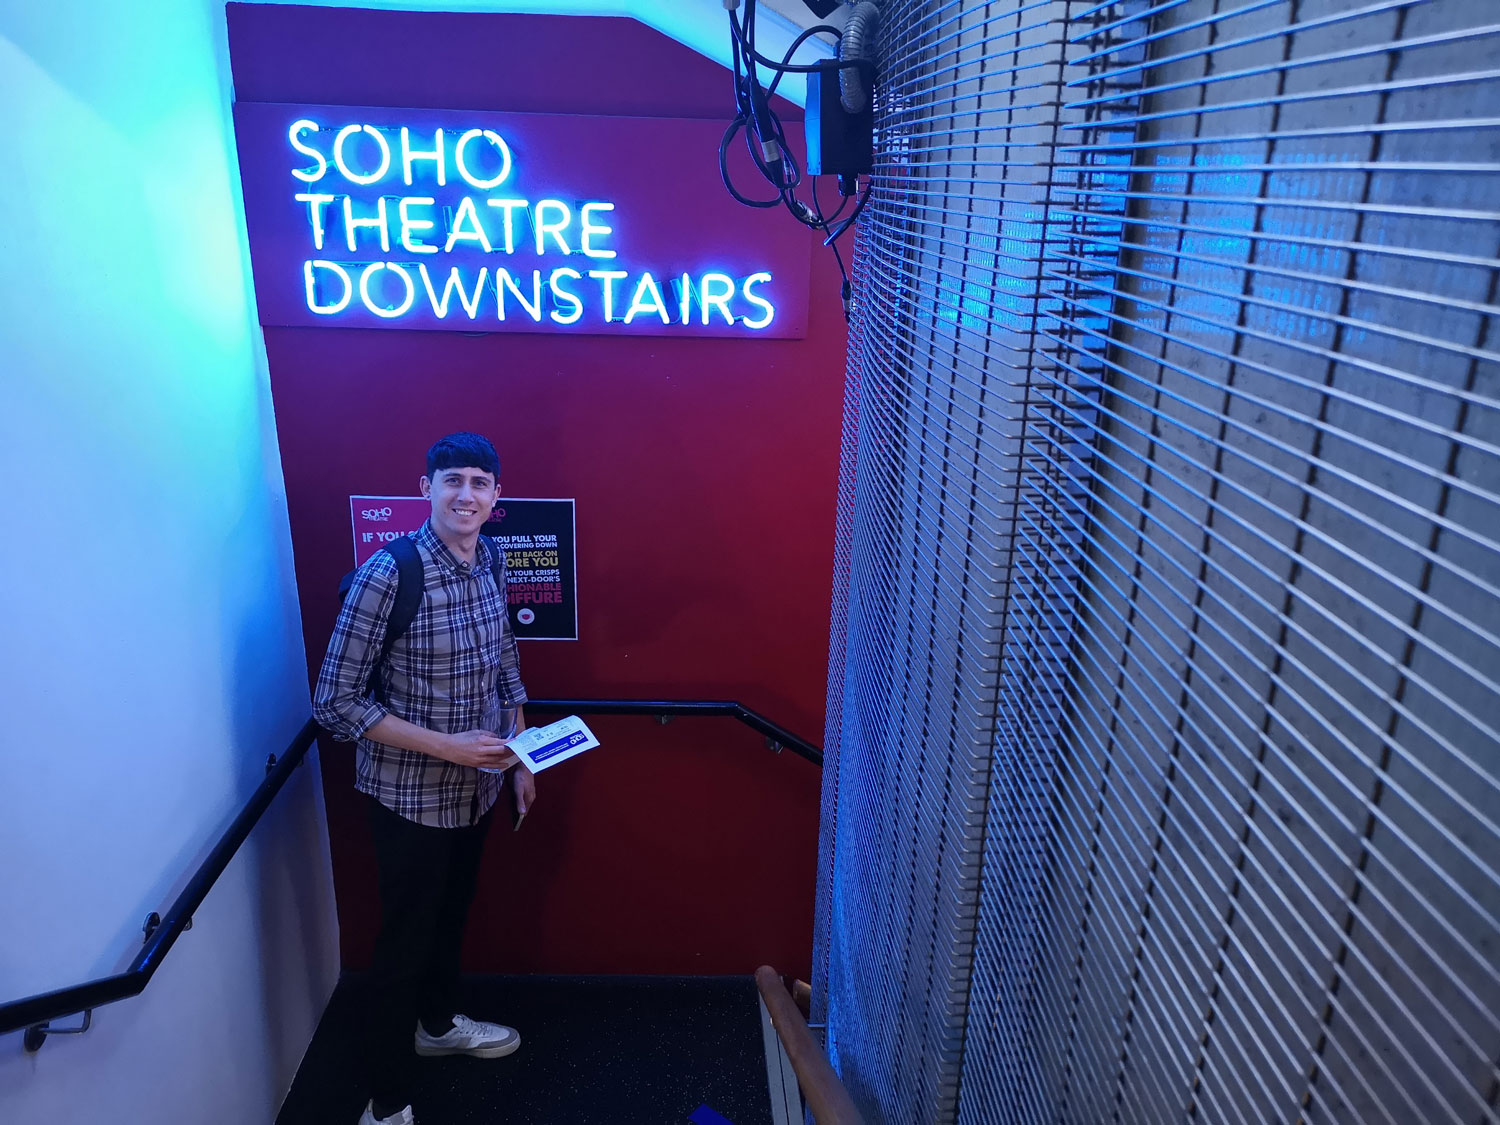 Nick from Cog poses in front of a sign that reads Soho Theatre Downstairs